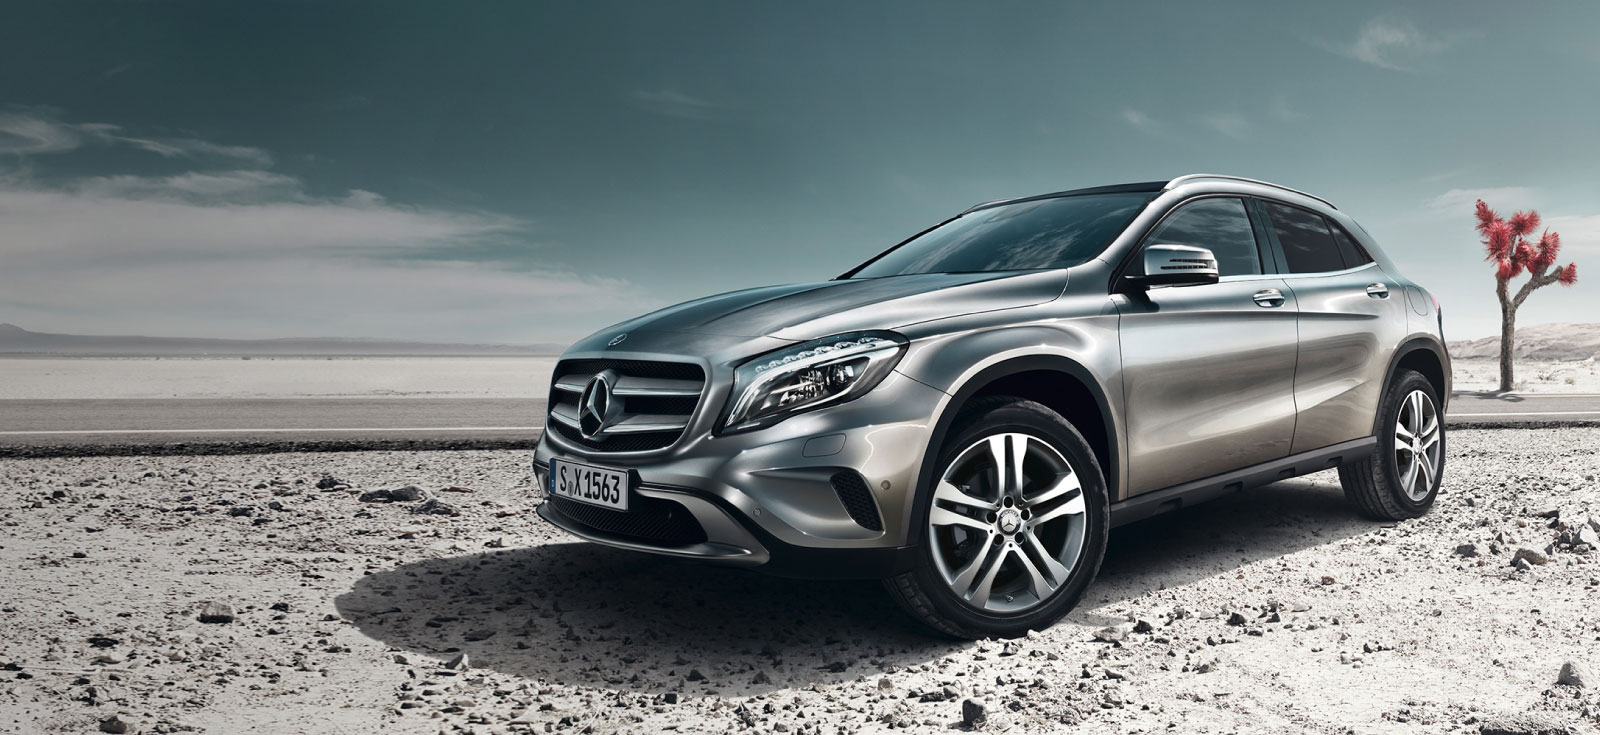 Mercedes benz gla deals new mercedes benz gla cars for for Mercedes benz new car deals